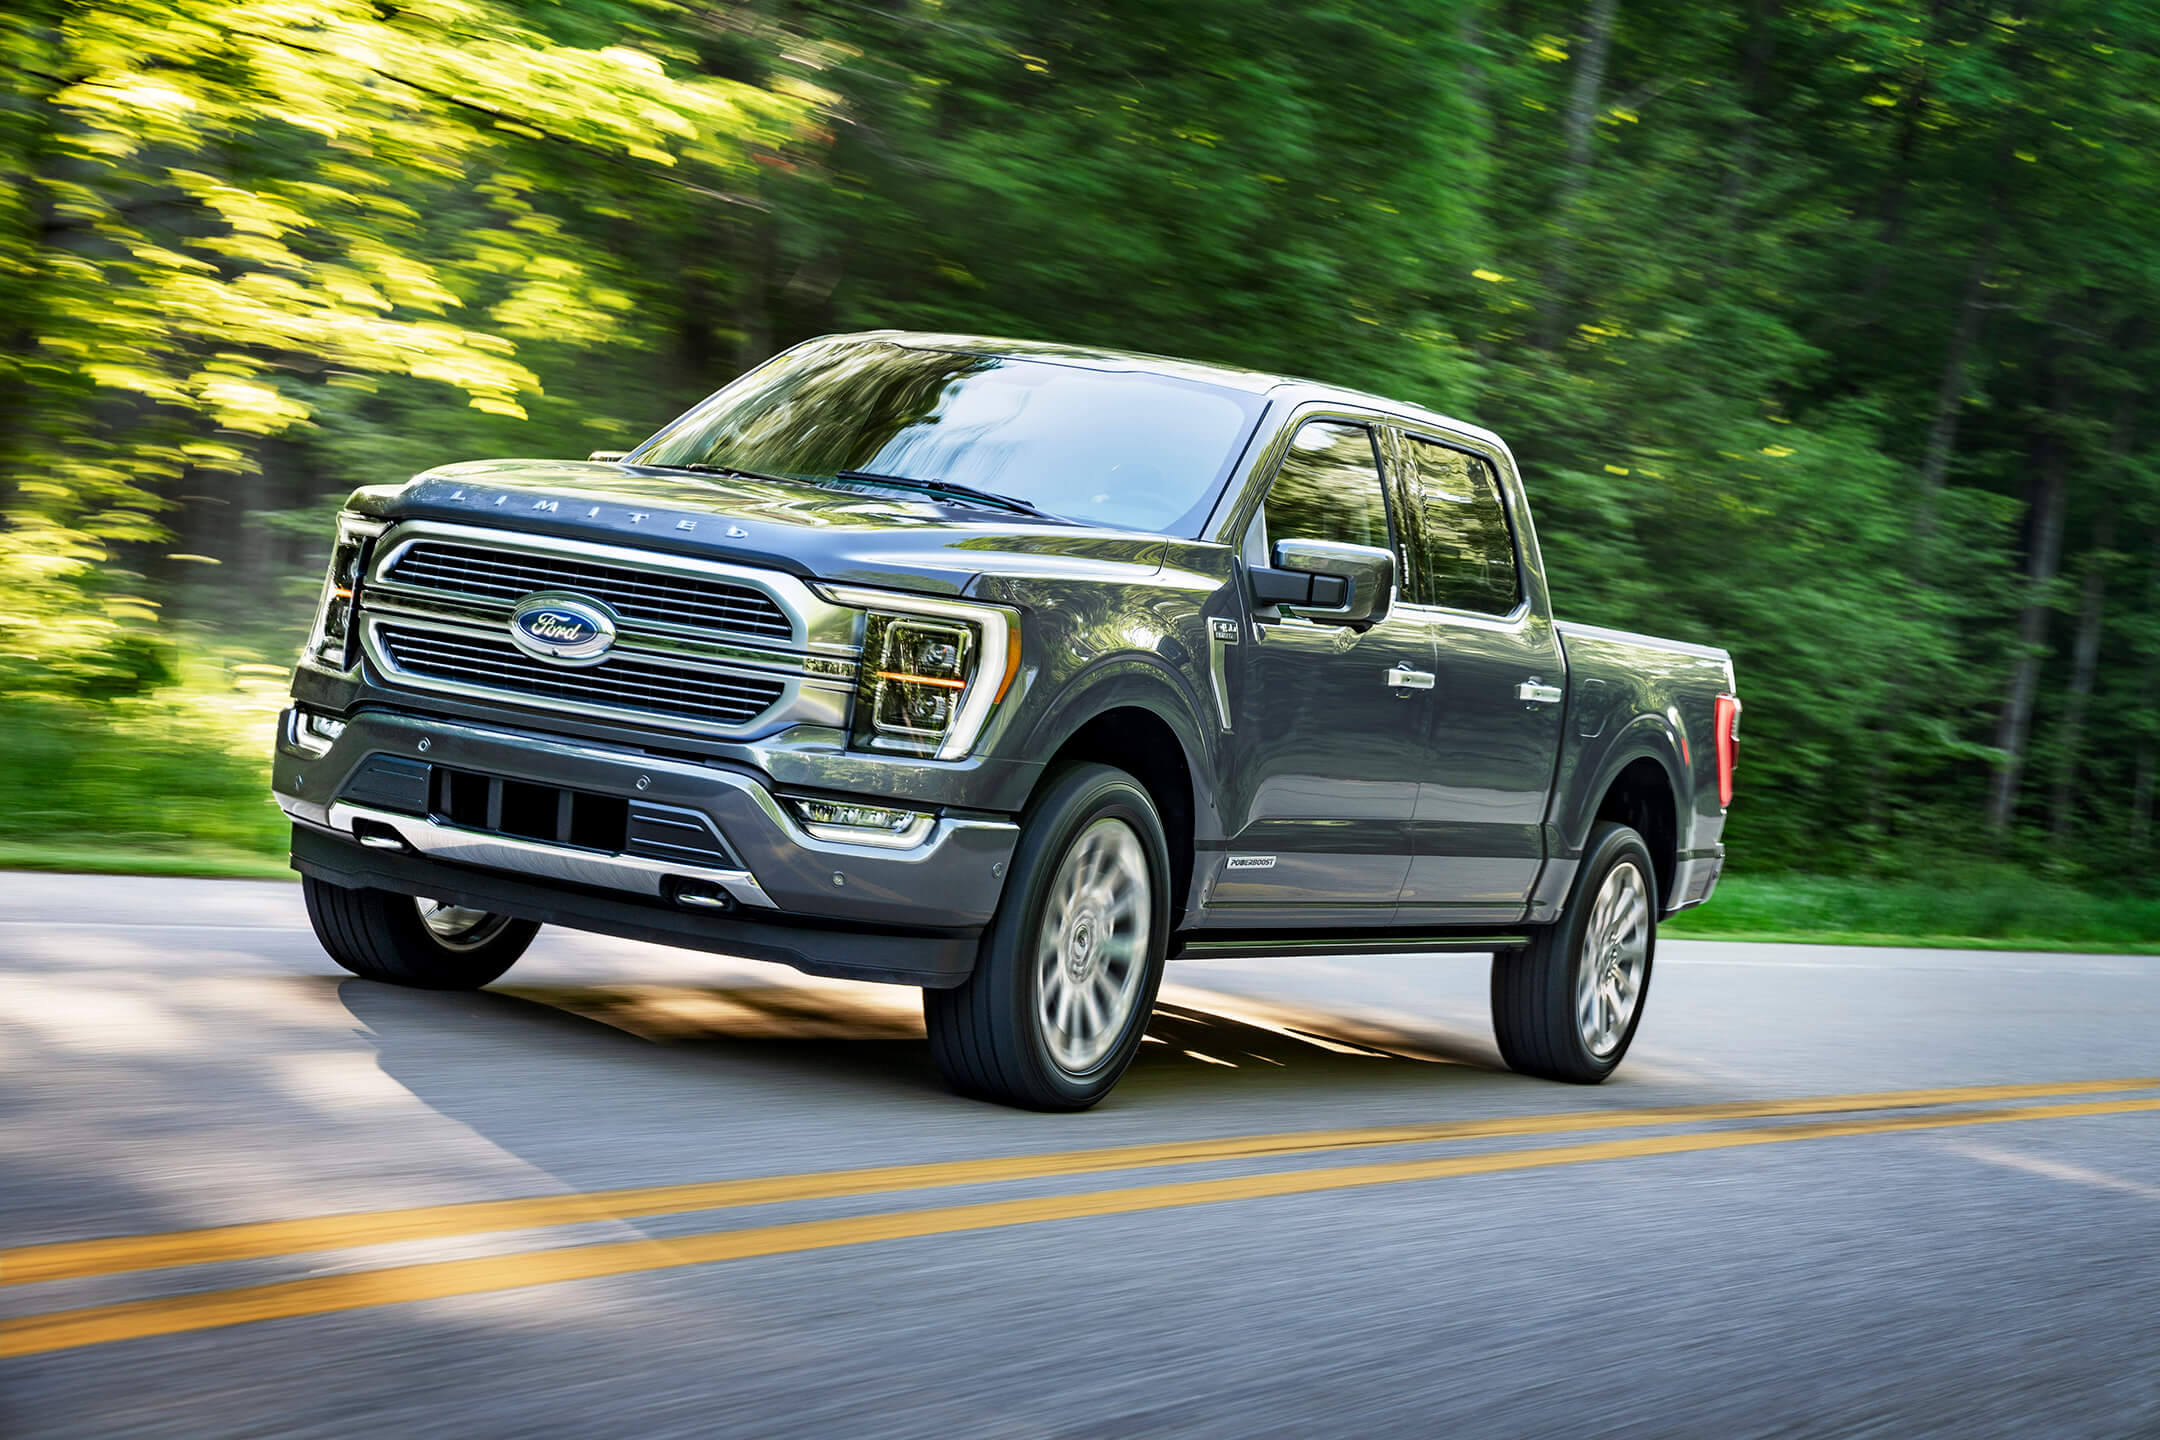 ford f150 driving on a road